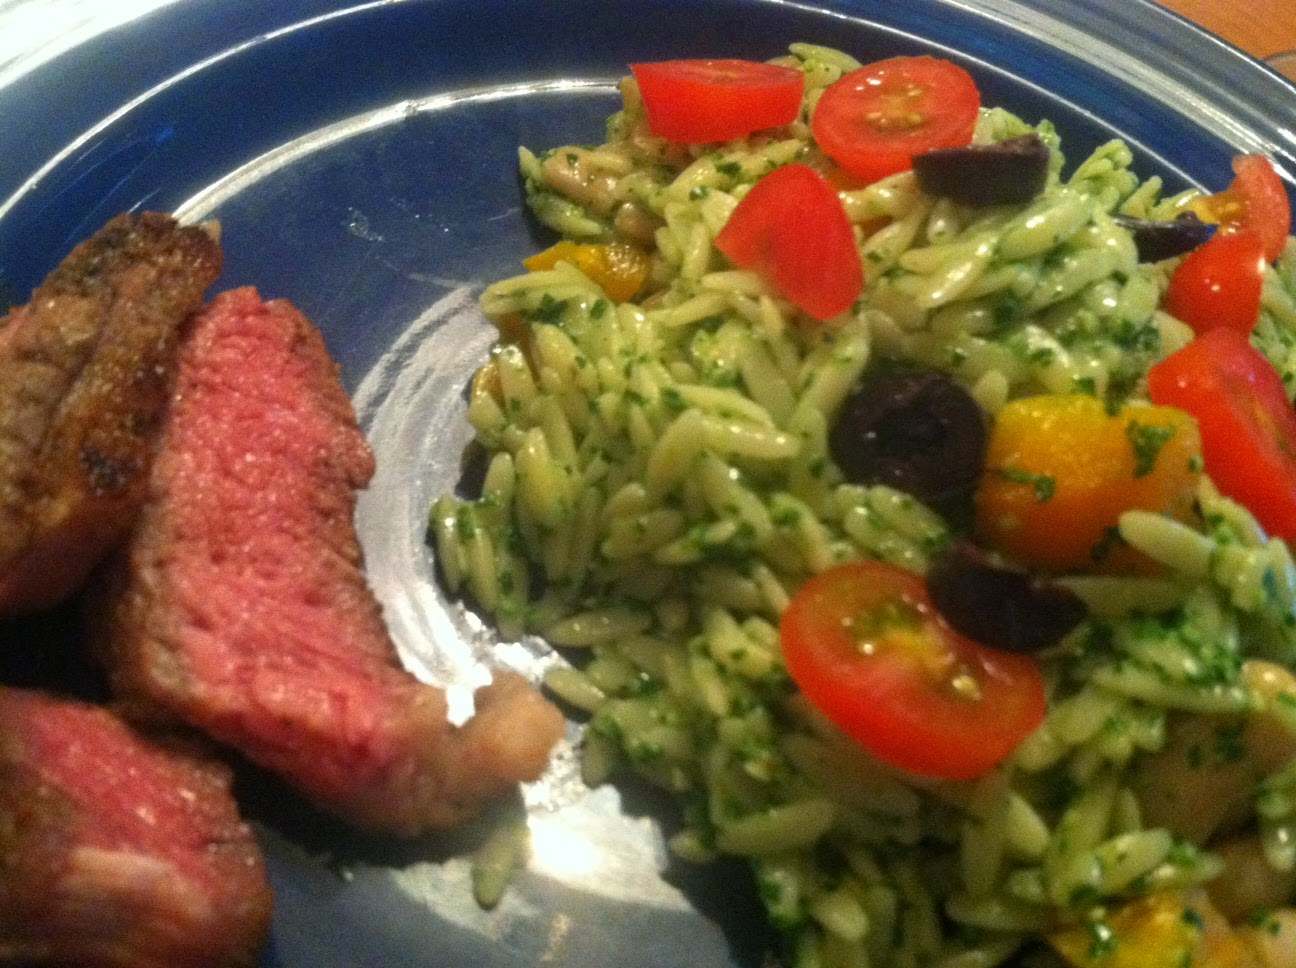 Orzo with Kale Pesto served with grilled steak. Cooking Chat recipe